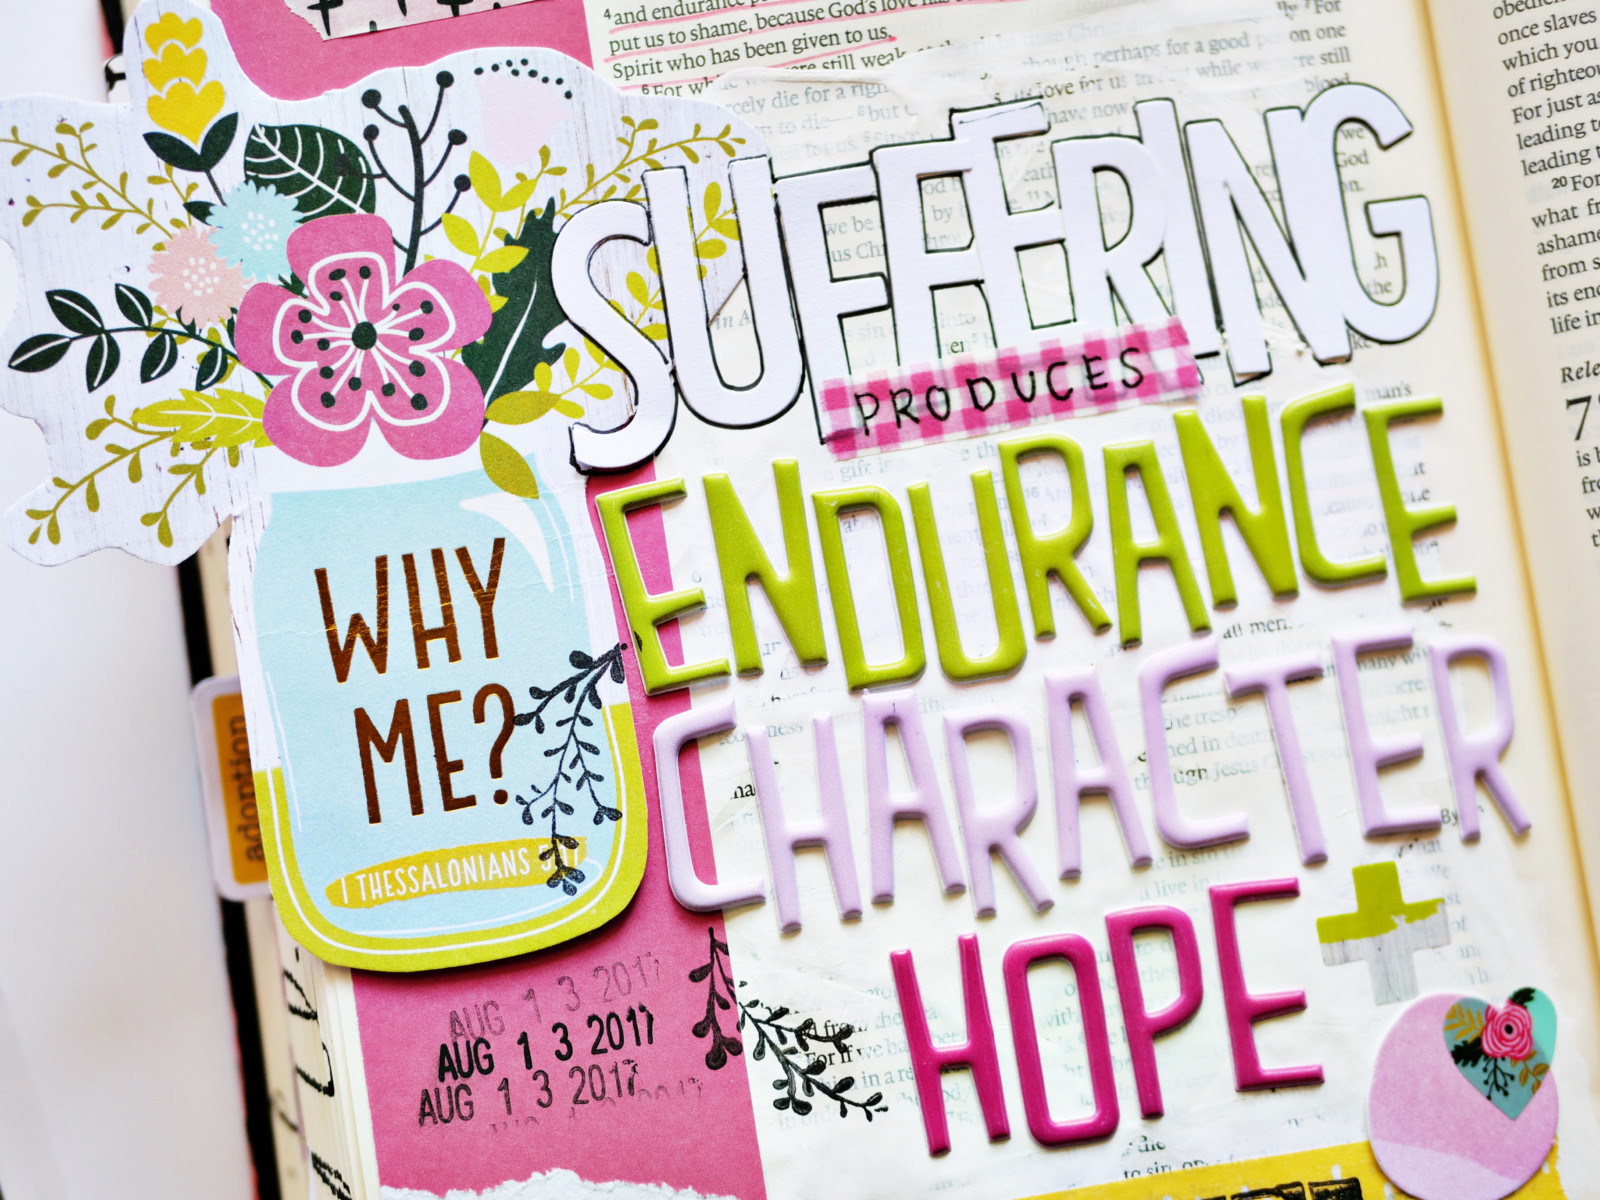 bible journaling entry by Andrea Gray | Why Me? A lesson in Perseverance